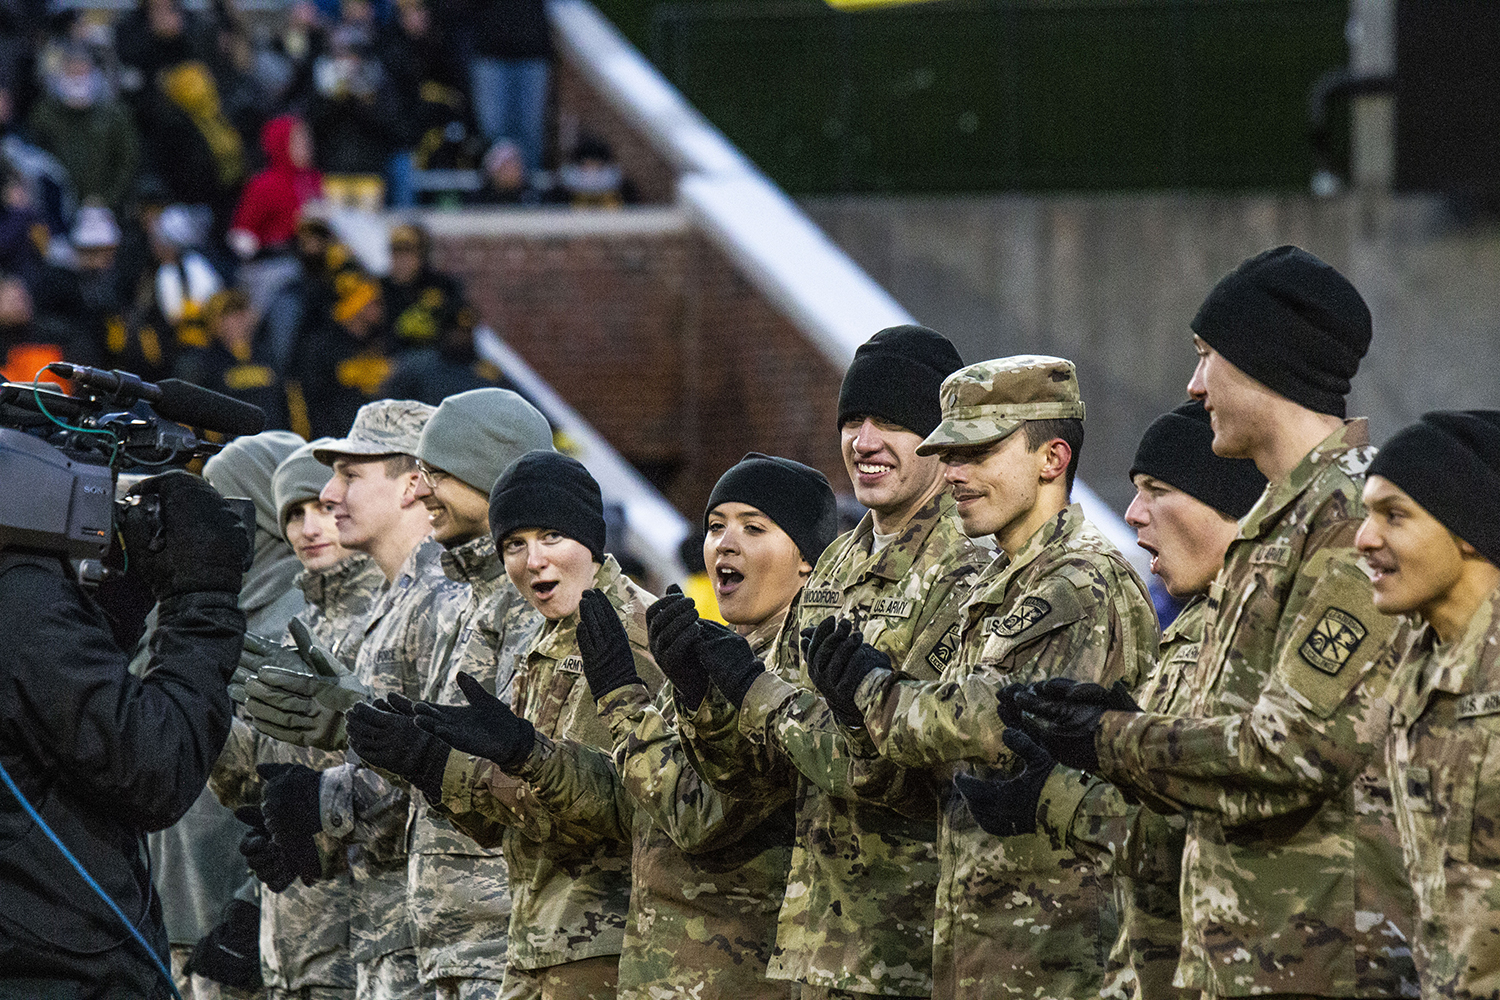 Members+of+the+U.S.+Army+cheer+during+the+Iowa%2FNorthwestern+game+at+Kinnick+Stadium+on+Saturday%2C+November+10%2C+2018.+The+Wildcats+defeated+the+Hawkeyes+14-10.+%28Katina+Zentz%2FThe+Daily+Iowan%29